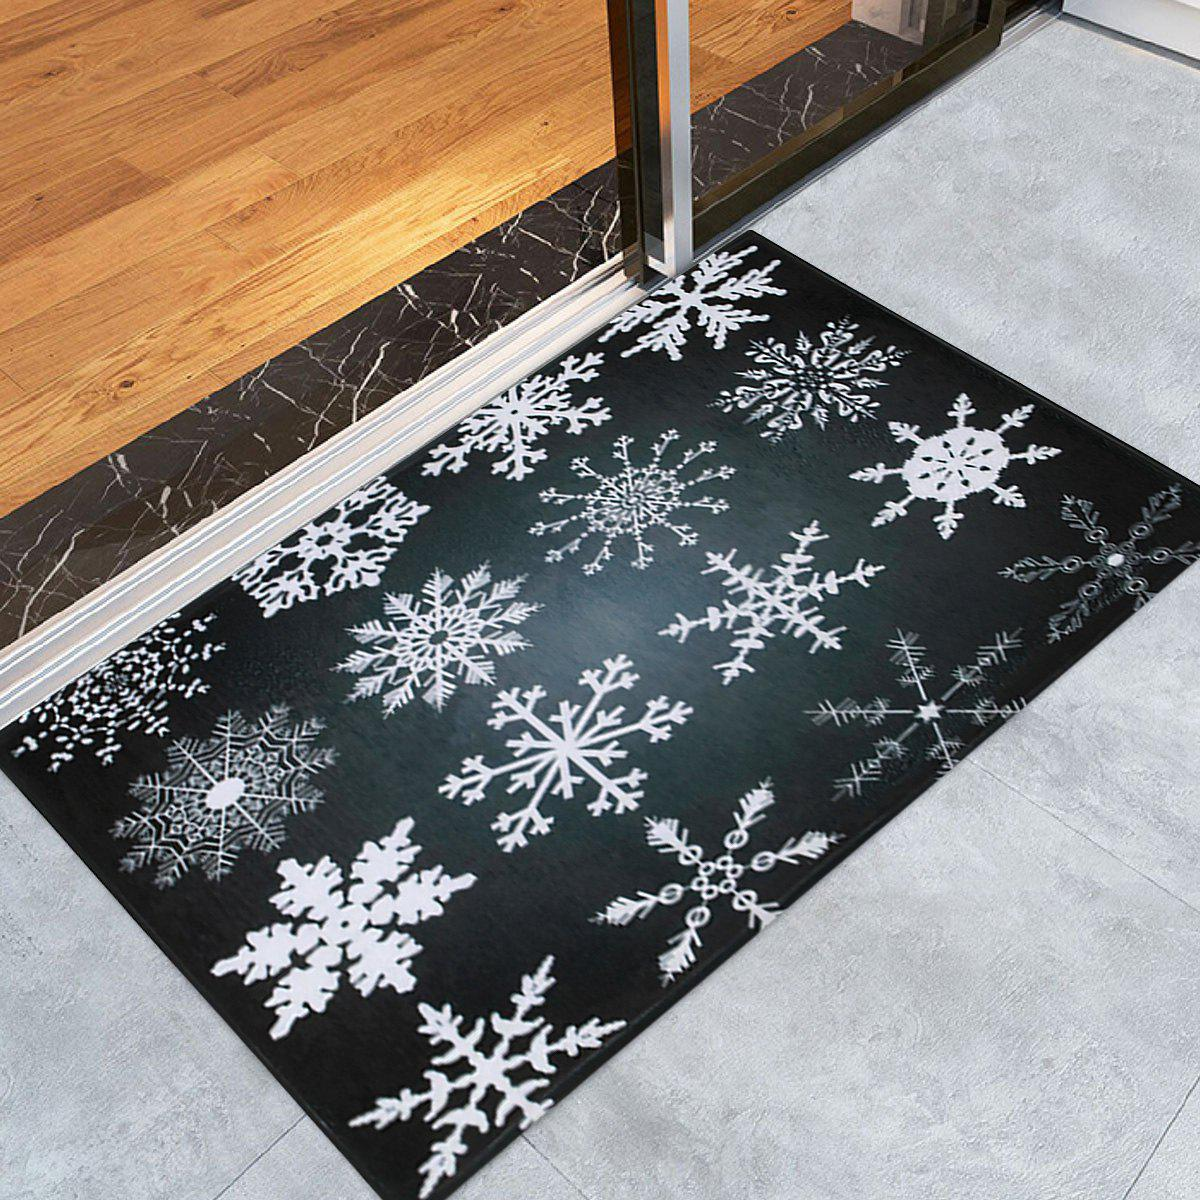 Chic Christmas Snowflake Nonslip Coral Fleece Area Rug